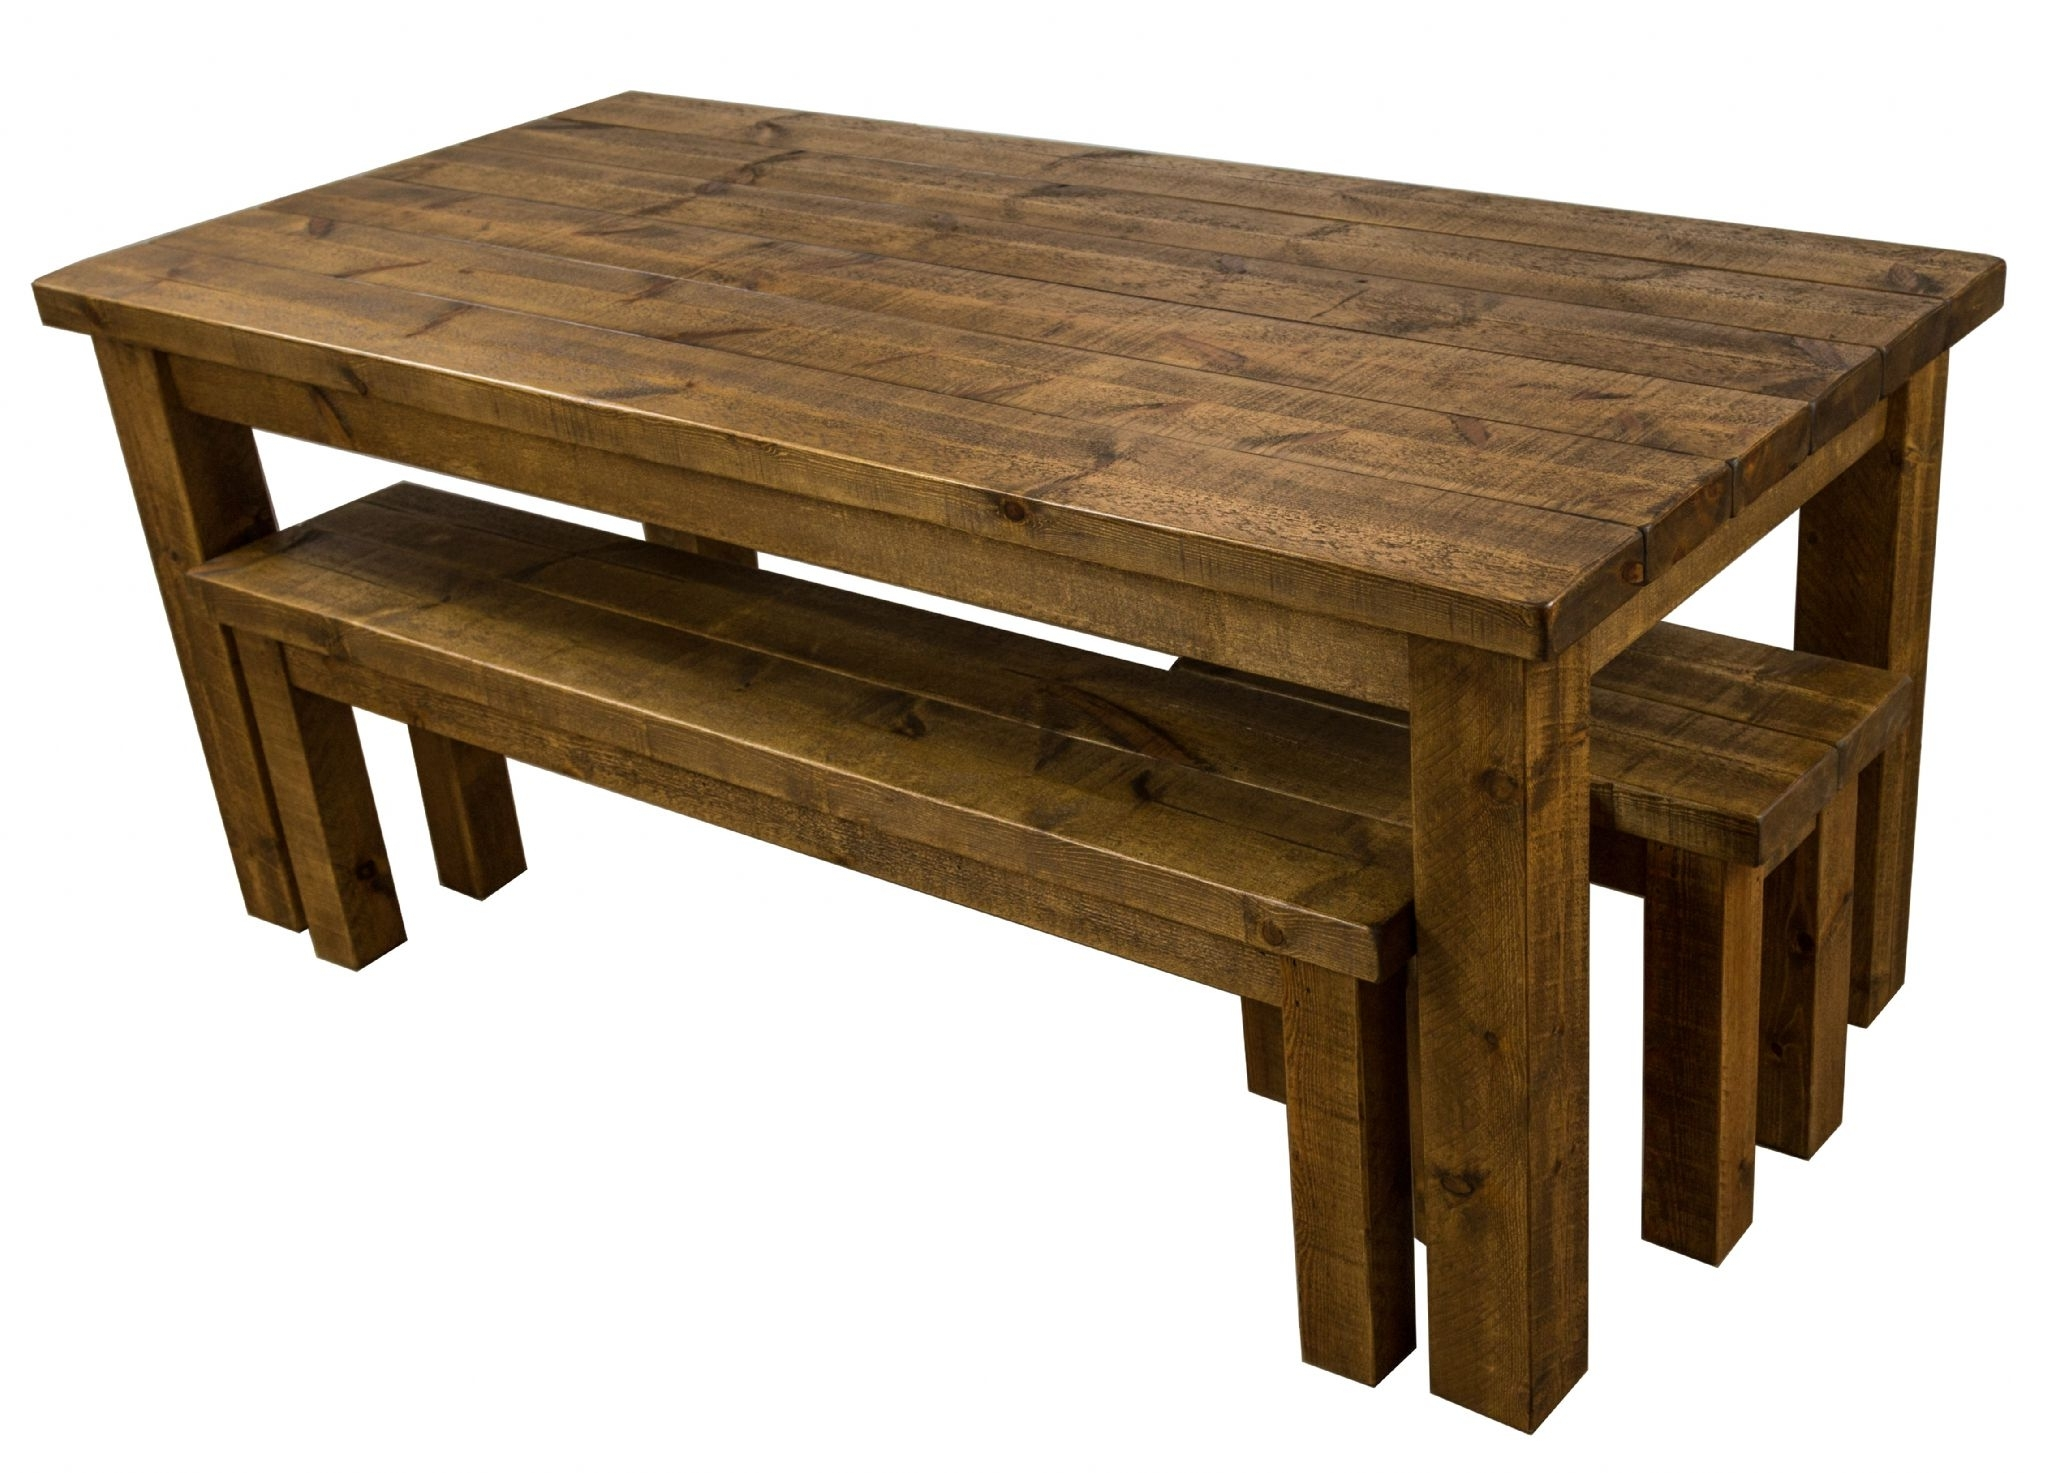 Well Known Dining Tables And 2 Benches Pertaining To Tortuga Rustic 7X3 Wooden Farmhouse Dining Table With 2 Benches (View 11 of 25)